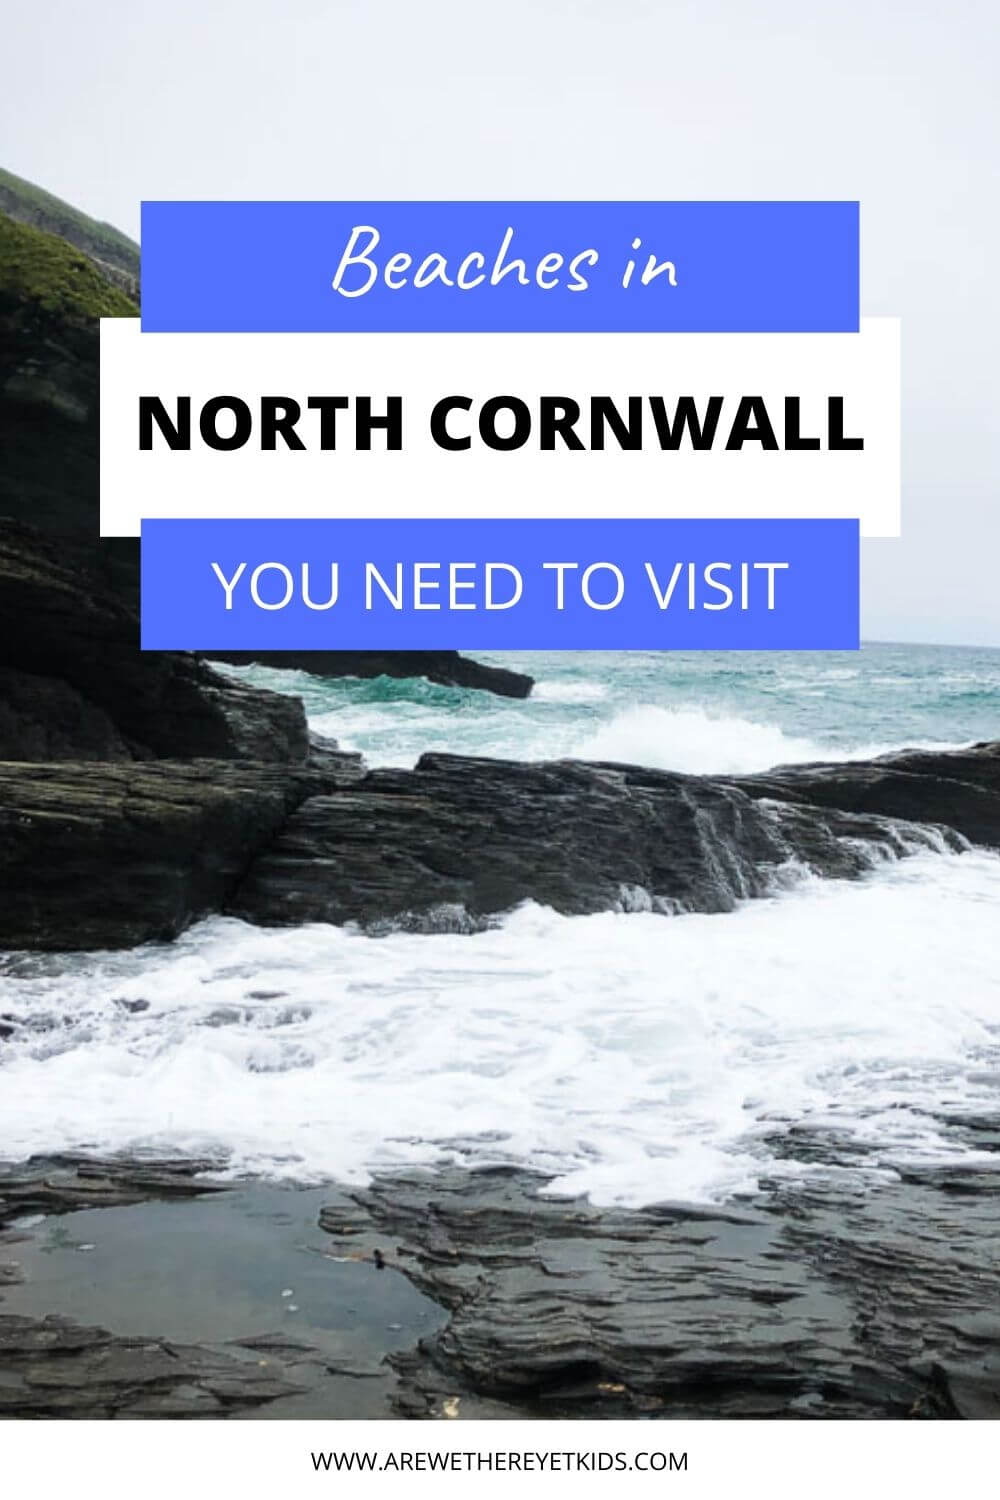 beaches in north cornwall you need to visit